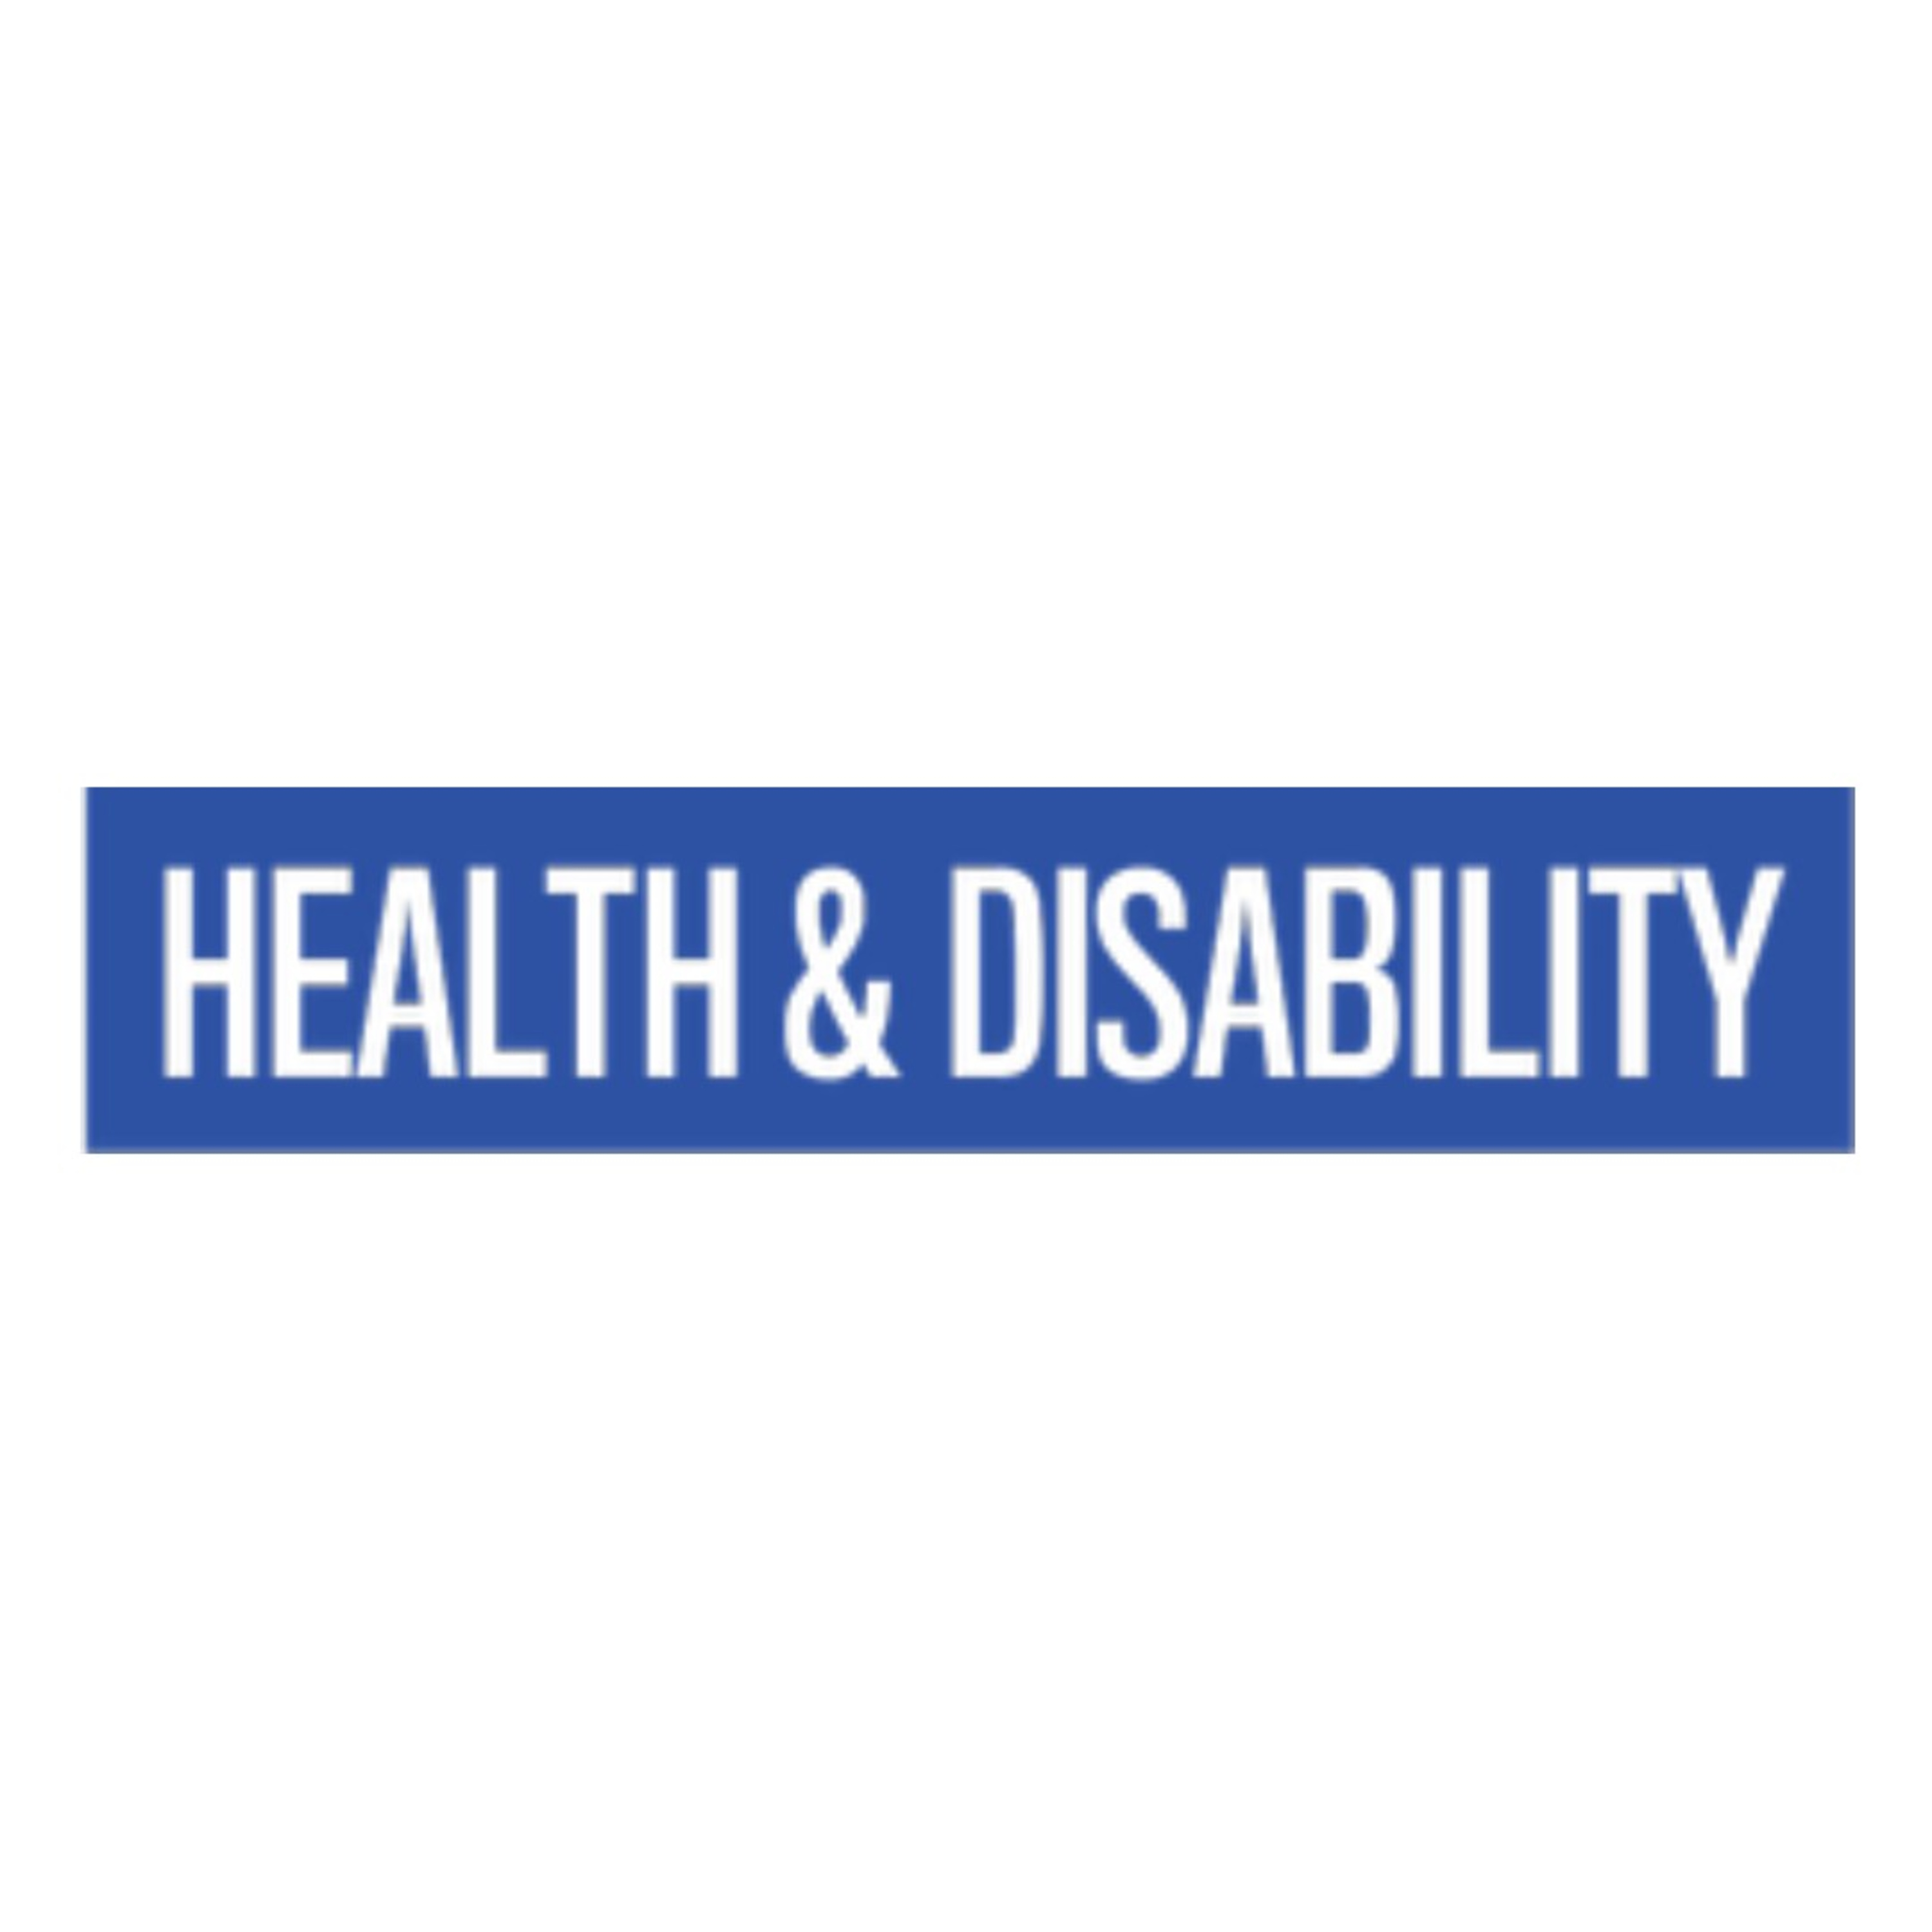 Welcome to Health & Disability